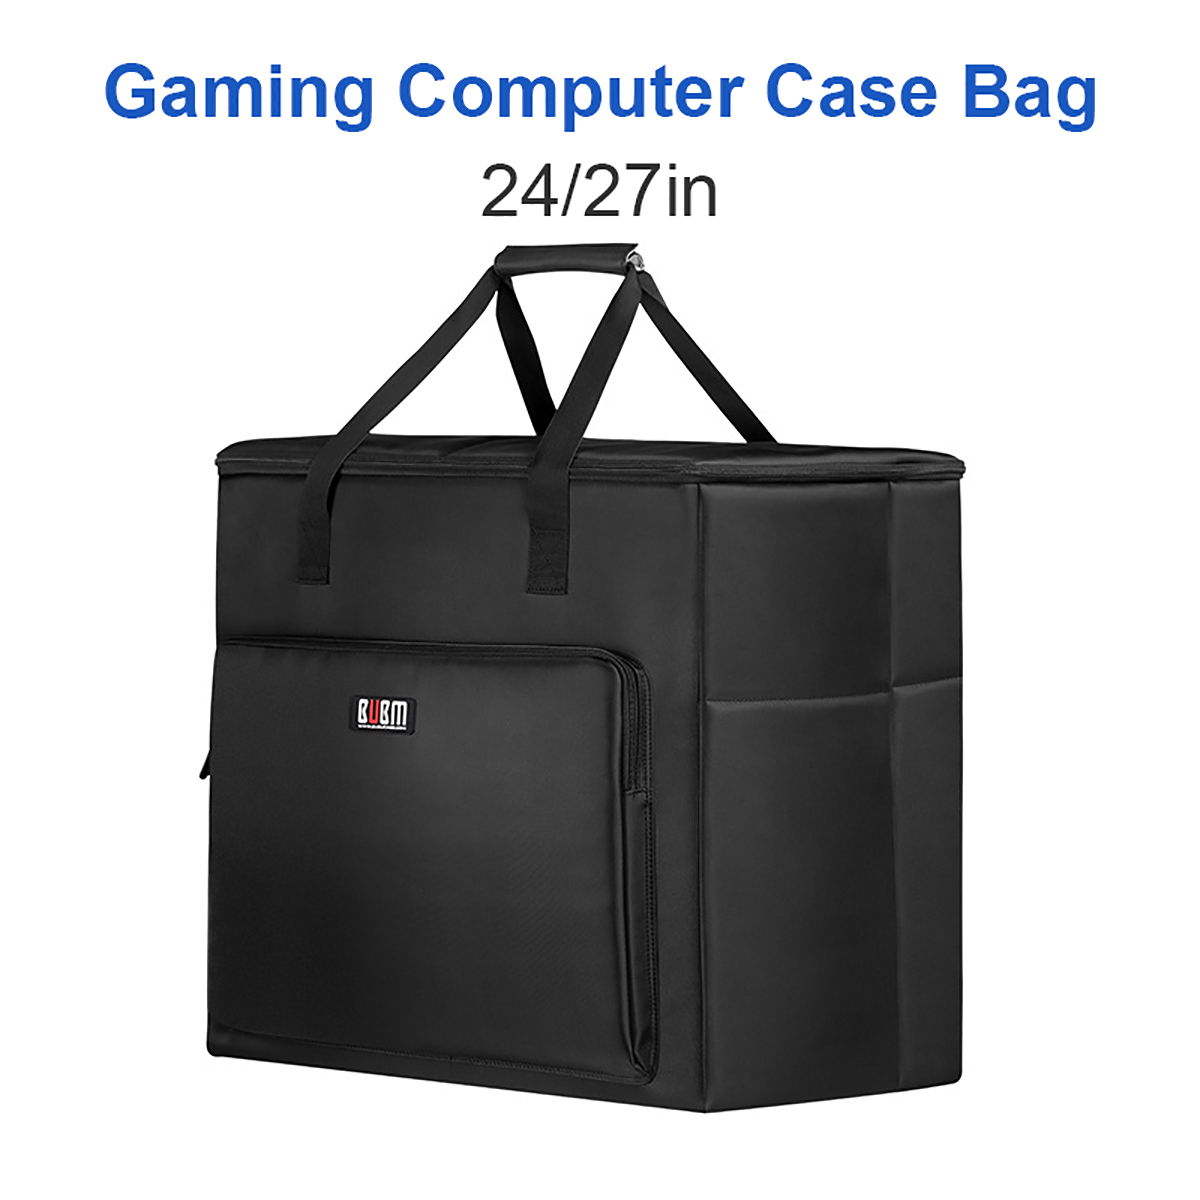 Desktop PC Computer Travel Storage Carrying Case Bag For Computer Main Processor Case Monitor Keyboard And Mouse